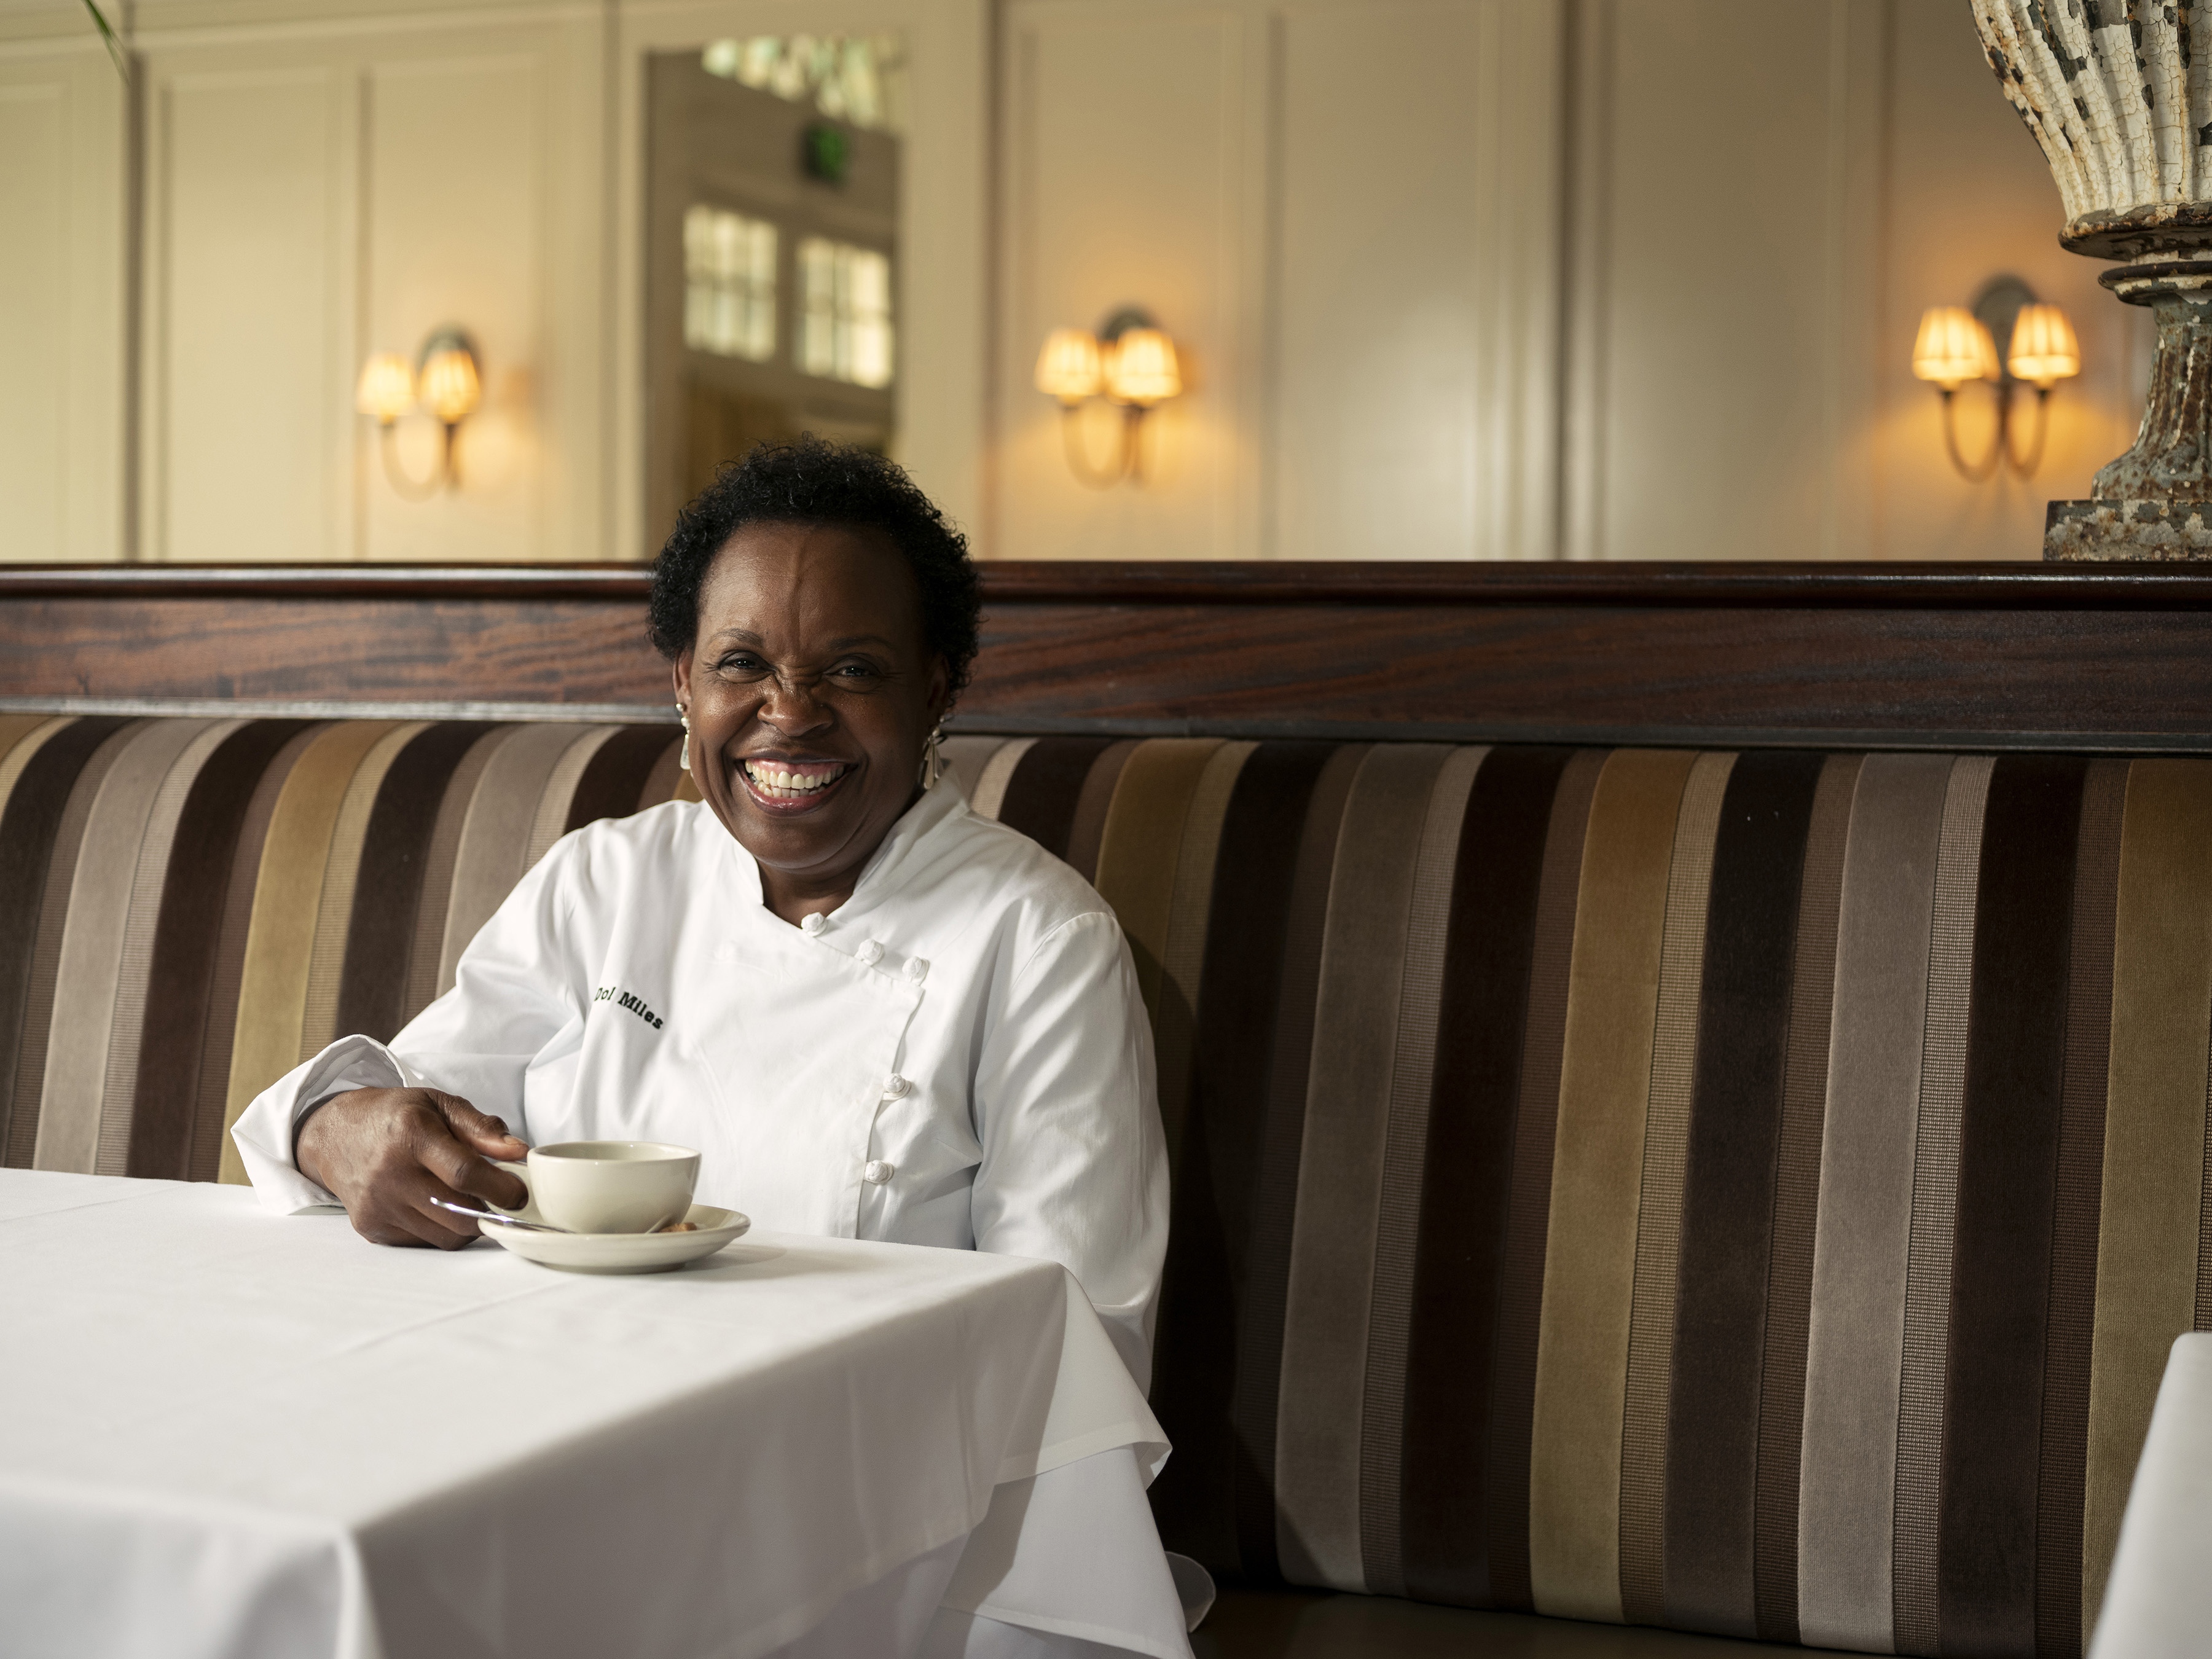 Dolester Miles of Birmingham, Ala., won a James Beard Award for being the country's best pastry chef in 2018. MUST CREDIT: Photo for The Washington Post by Rob Culpepper